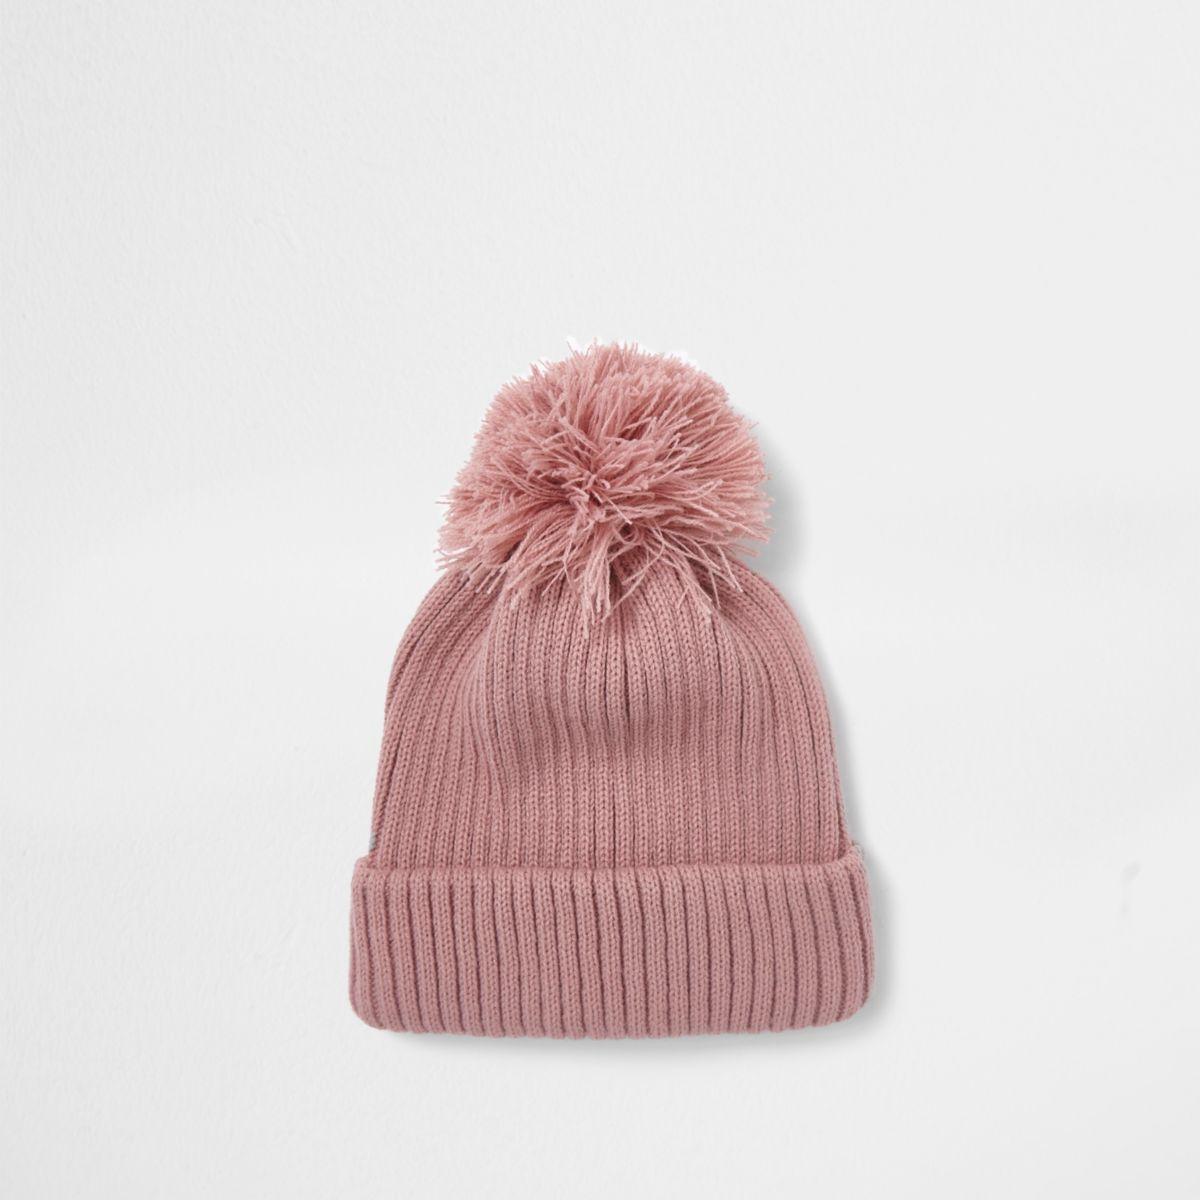 1c28d601a05 Pink bobble pom pom beanie hat - Accessories - Sale - men